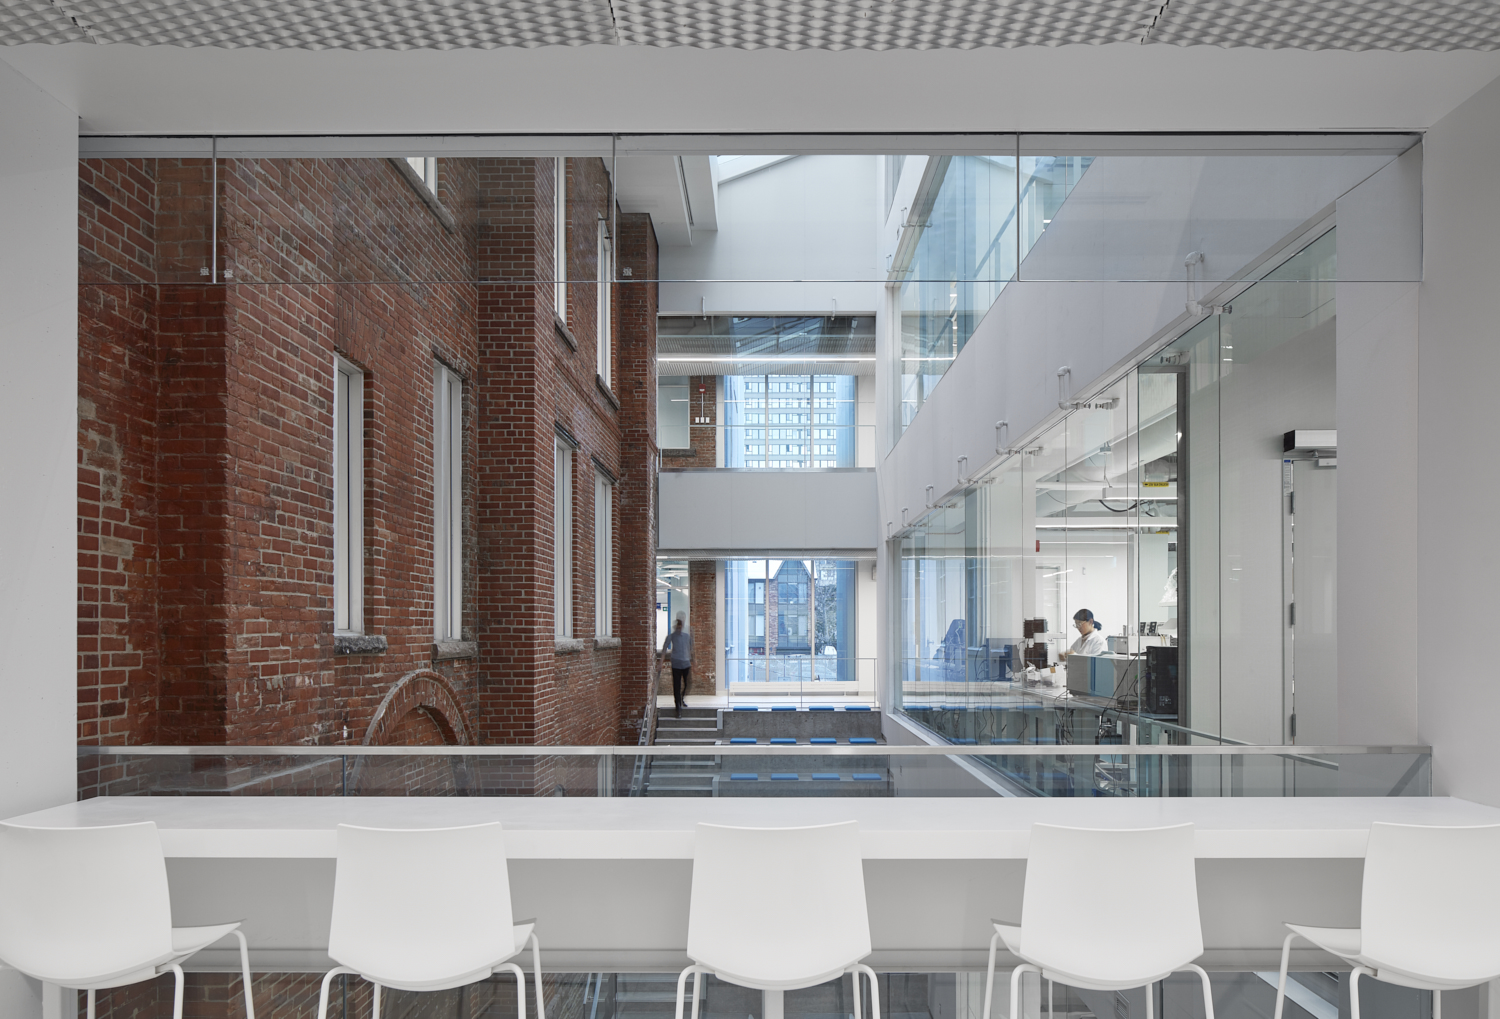 http://mtarch.com/projects/ryerson-university-centre-for-urban-innovation/#